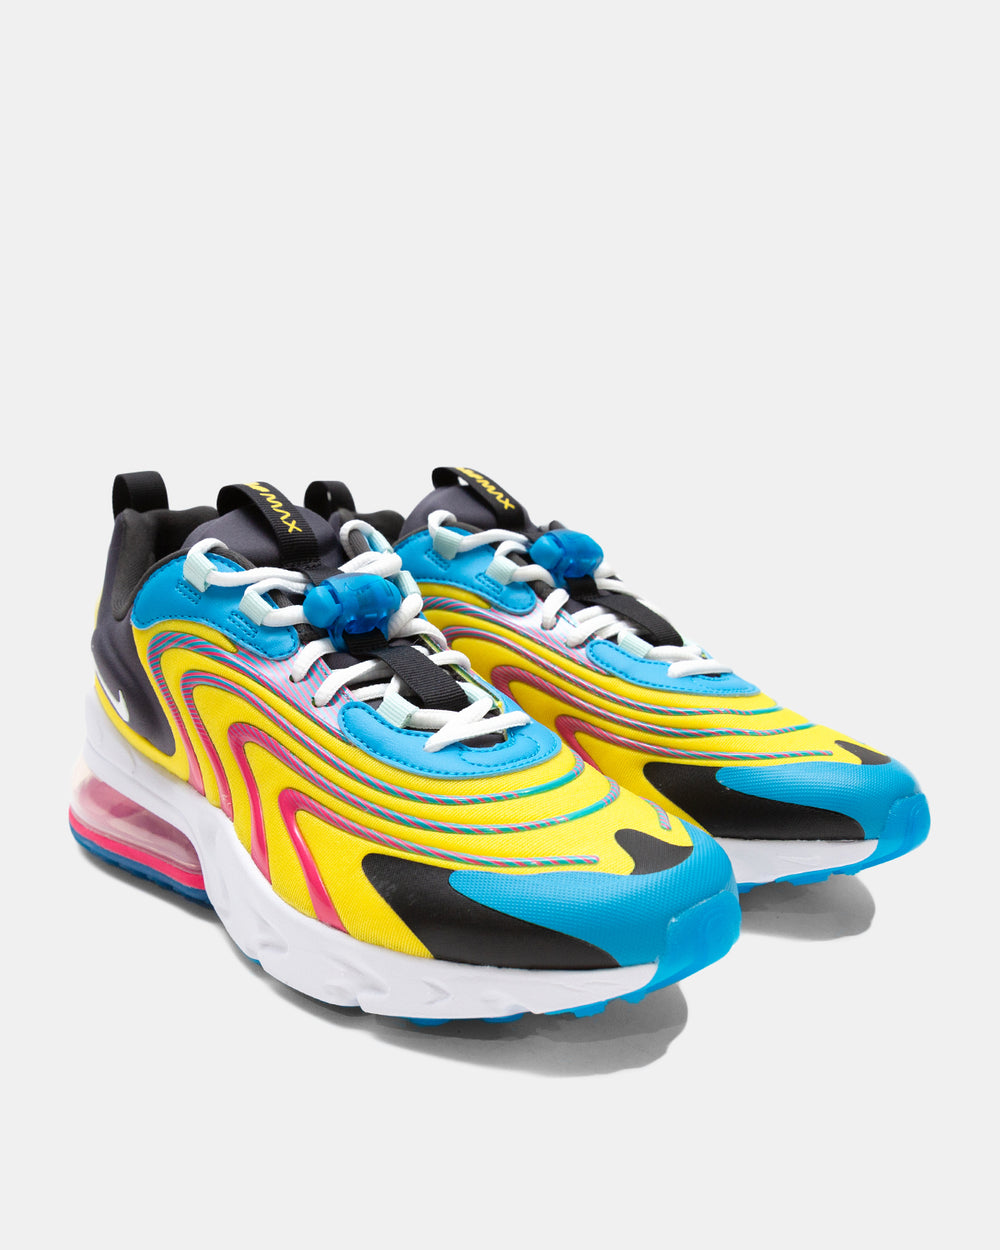 Air Max 270 React ENG (Laser Blue | Anthracite | Watermelon | White)